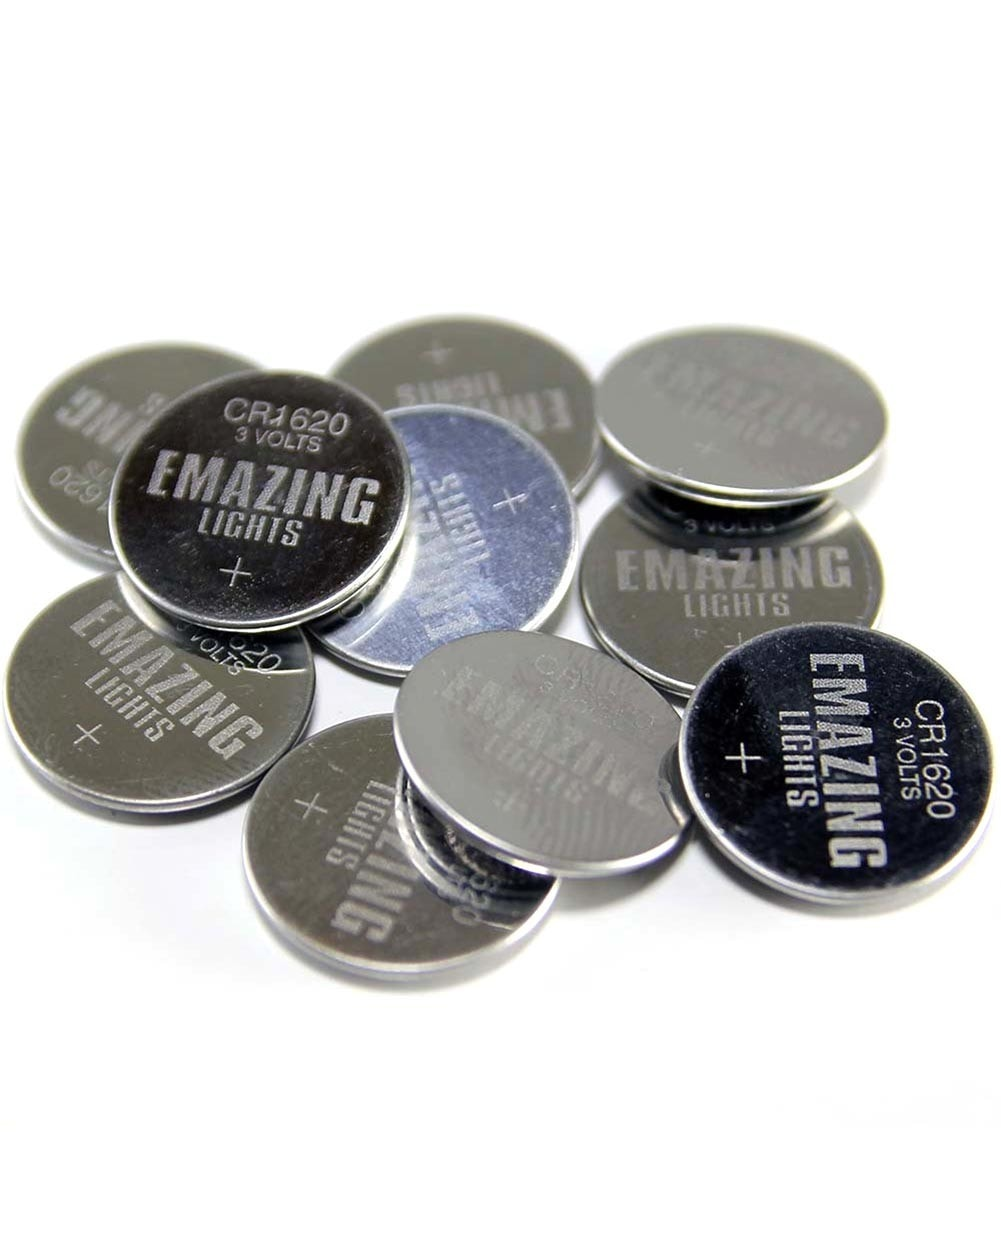 CR1620 Button Cell Batteries - 20